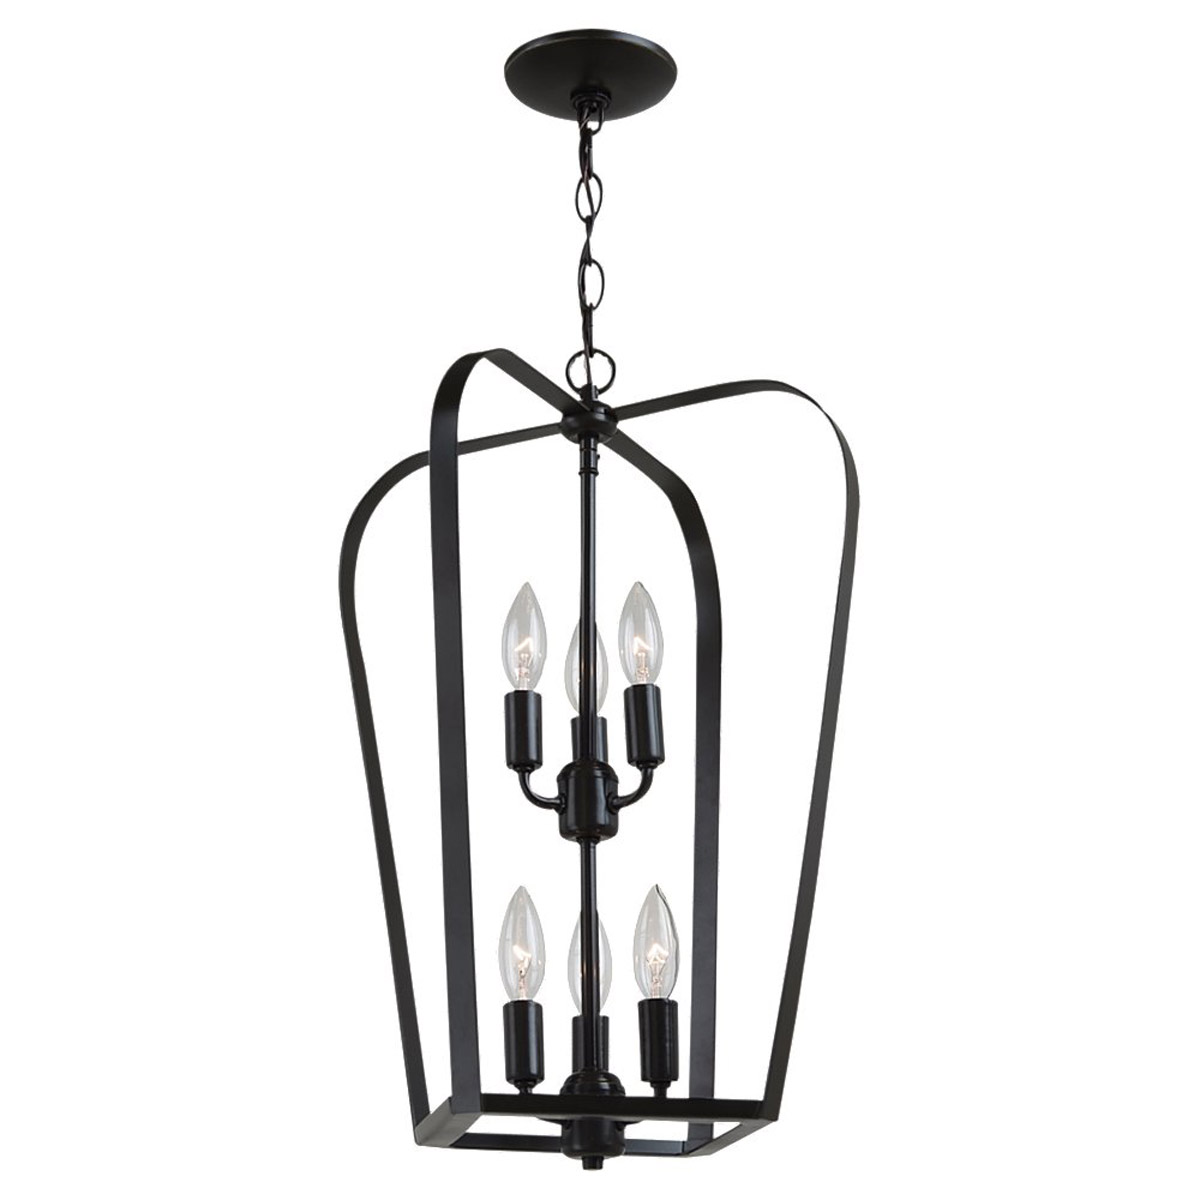 Sea Gull Lighting Windgate 6 Light Foyer Pendant in Heirloom Bronze 54941-782 photo